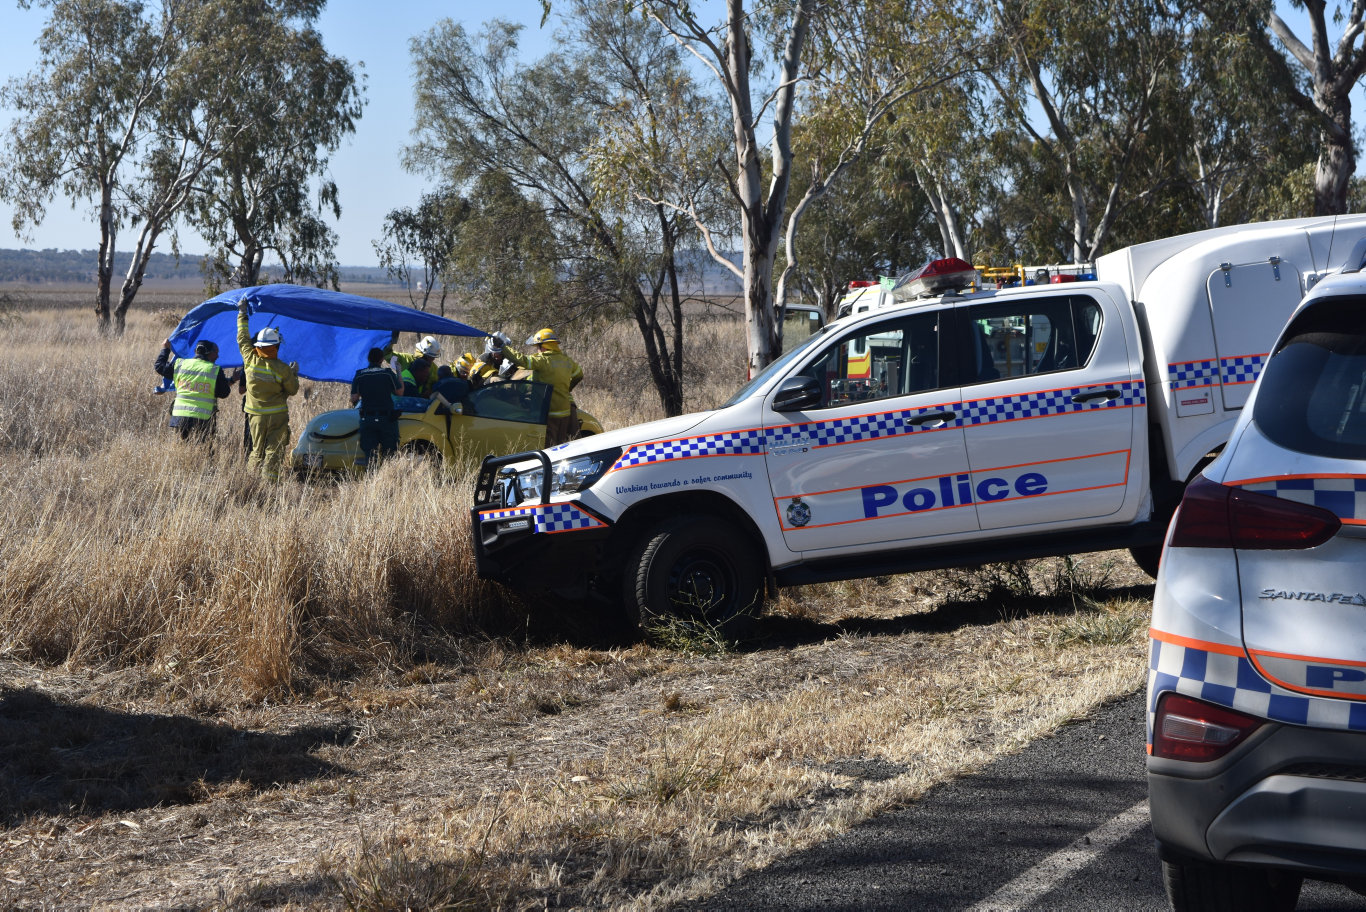 TRAFFIC CRASH: Emergency services are on scene at a traffic crash north east of Dalby.